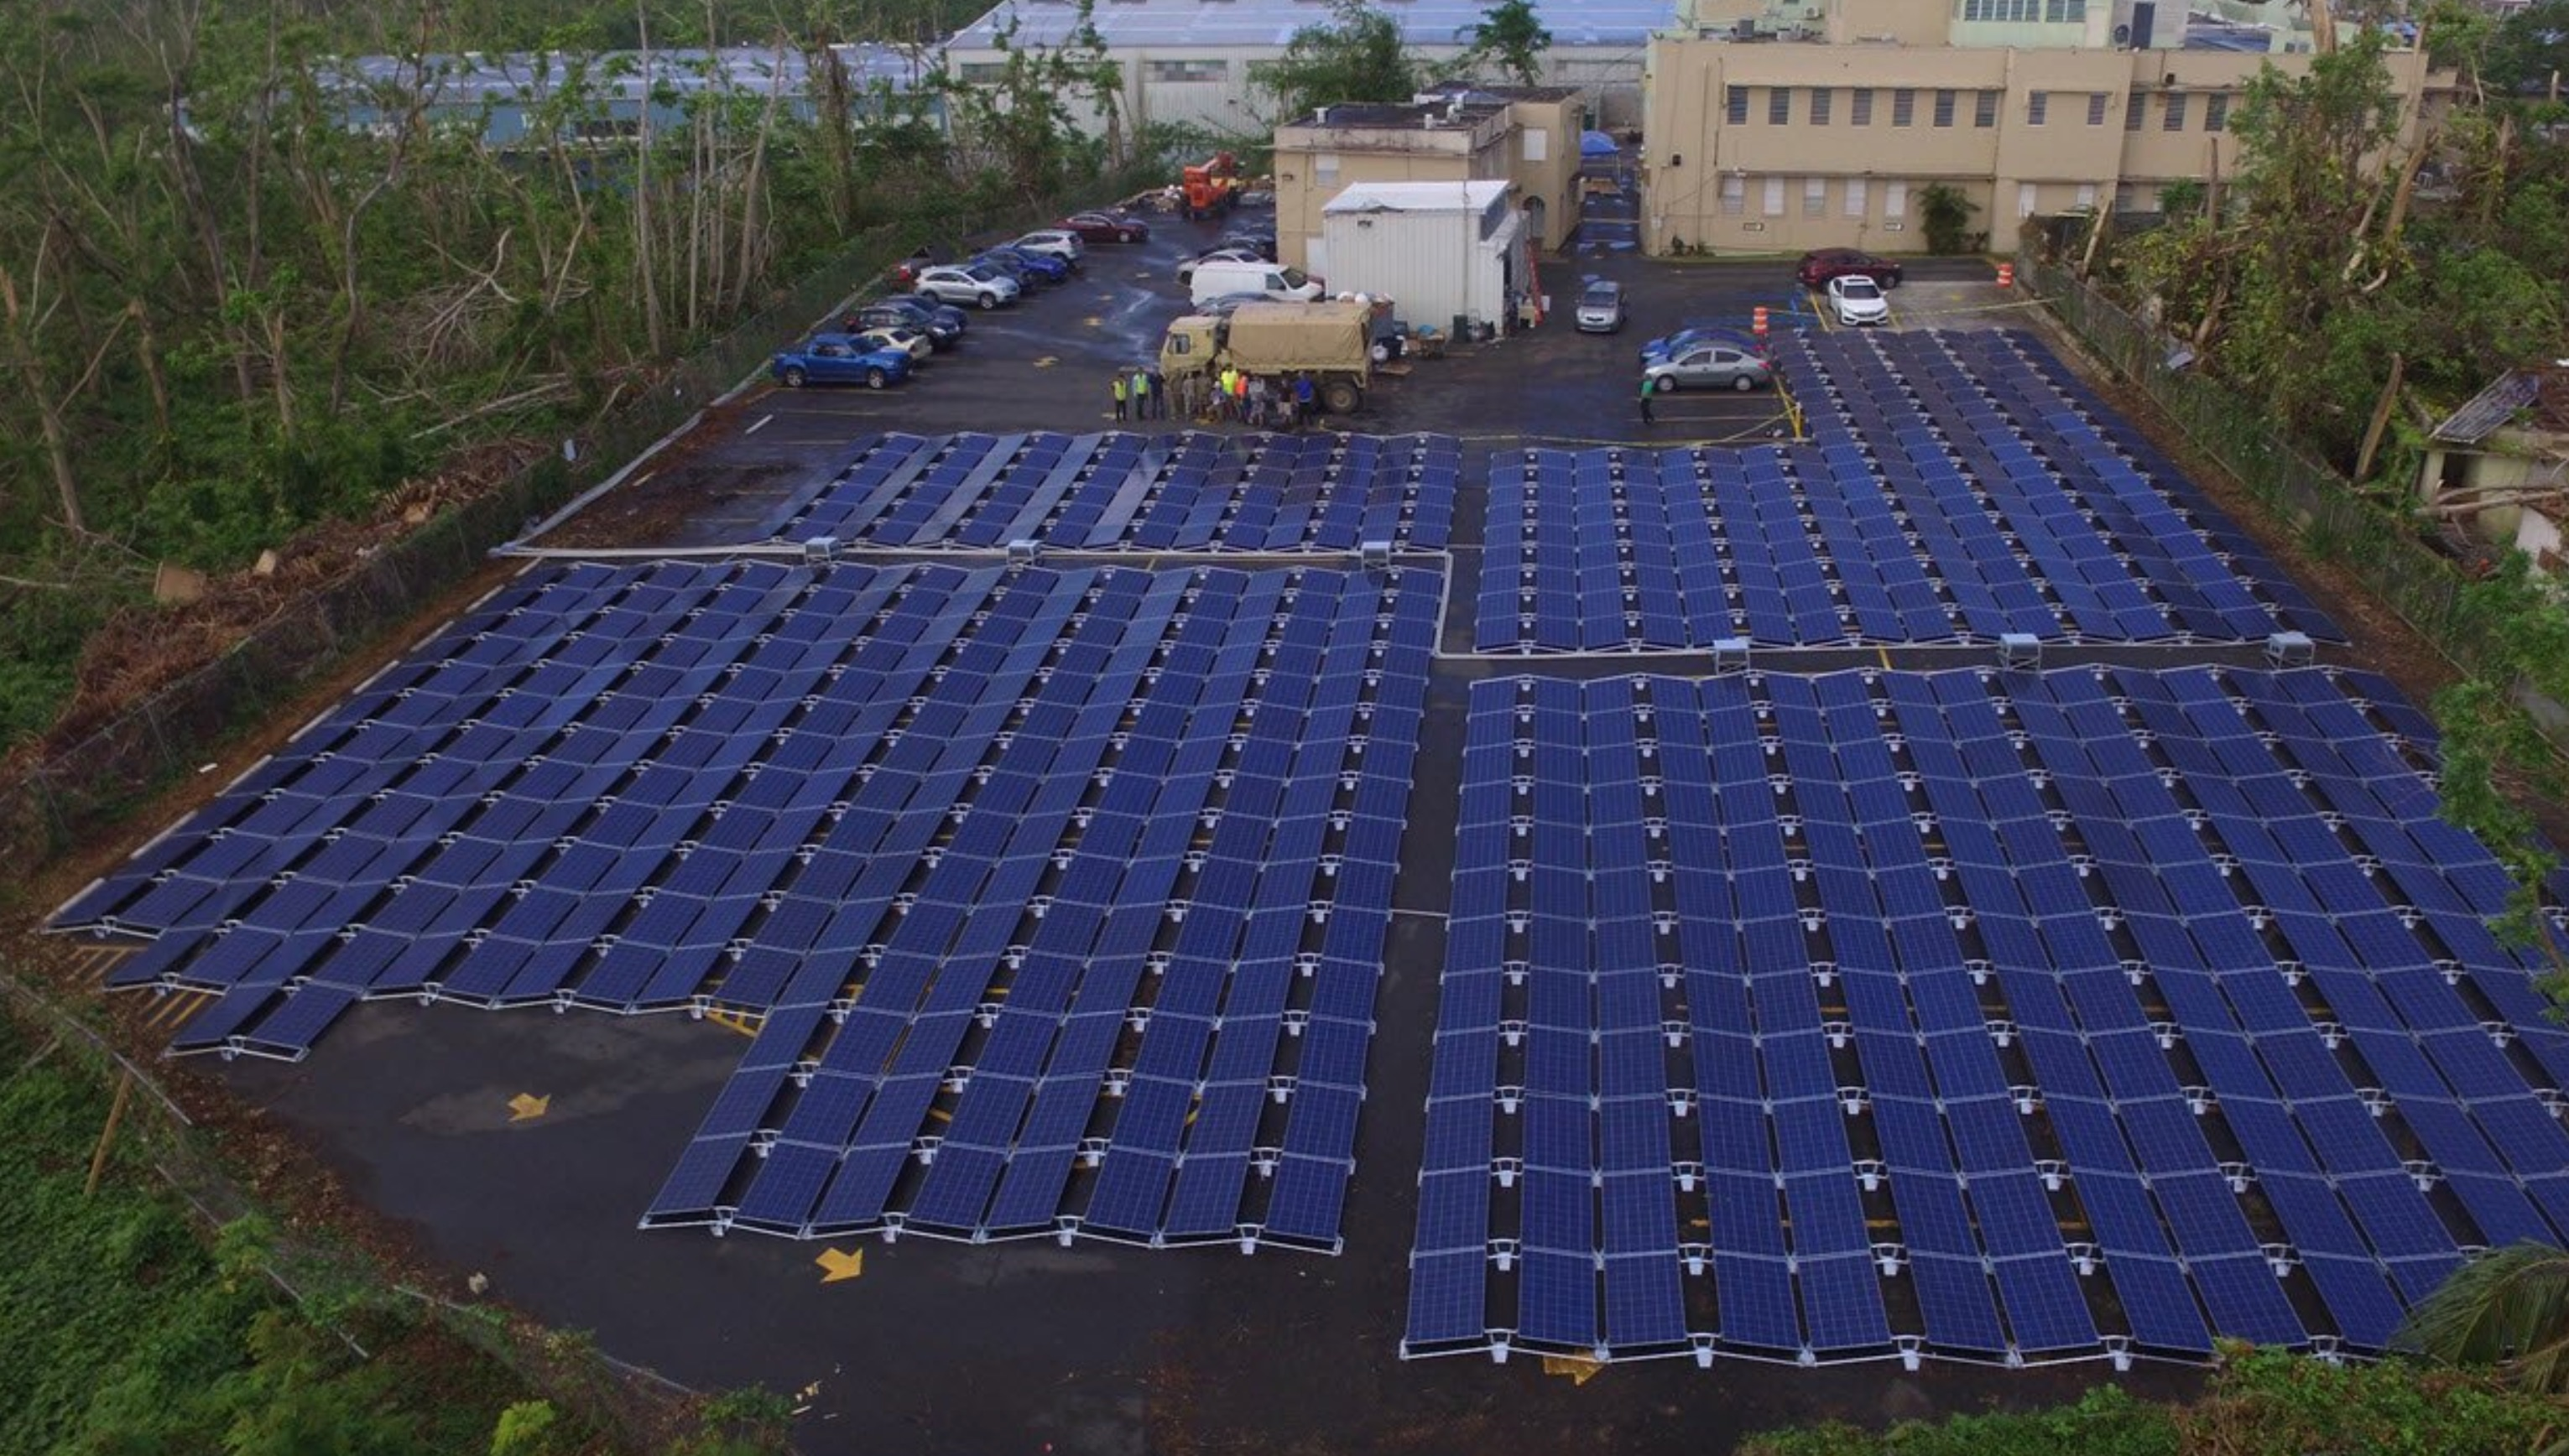 Tesla Posts First Photos Of Solar Battery Project In